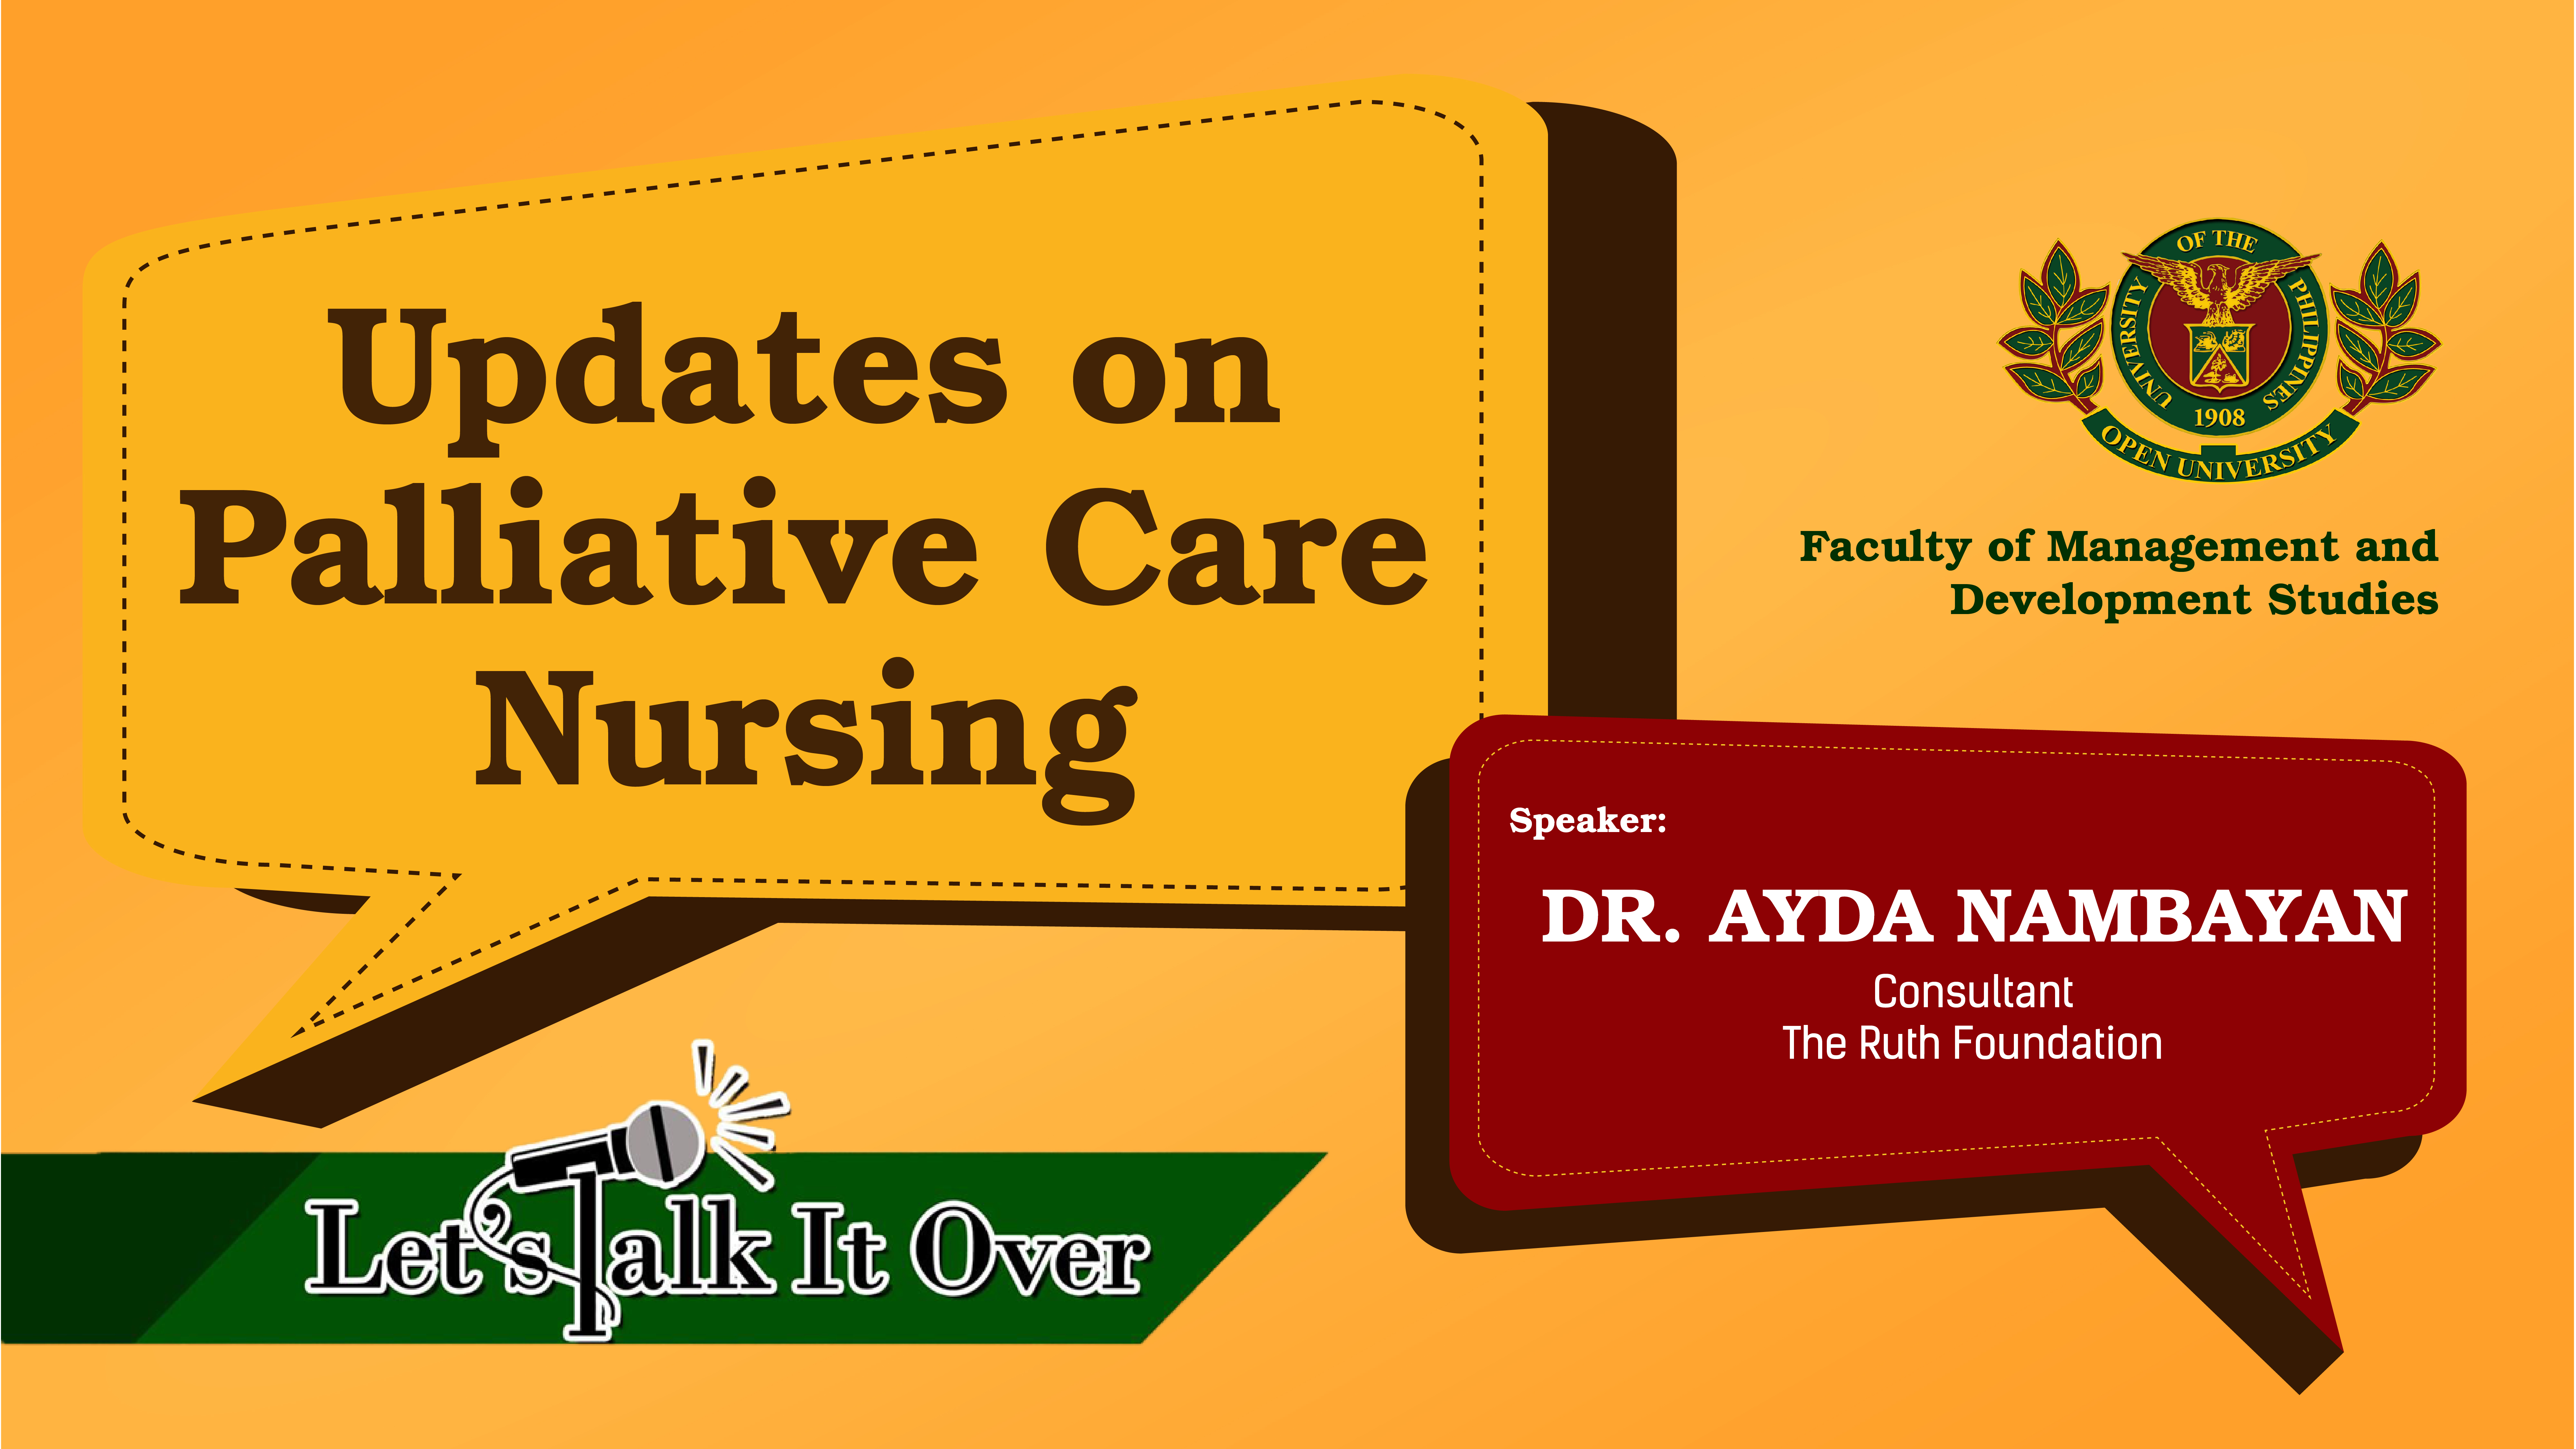 Updates on Palliative Care Nursing | Dr. Ayda Nambayan